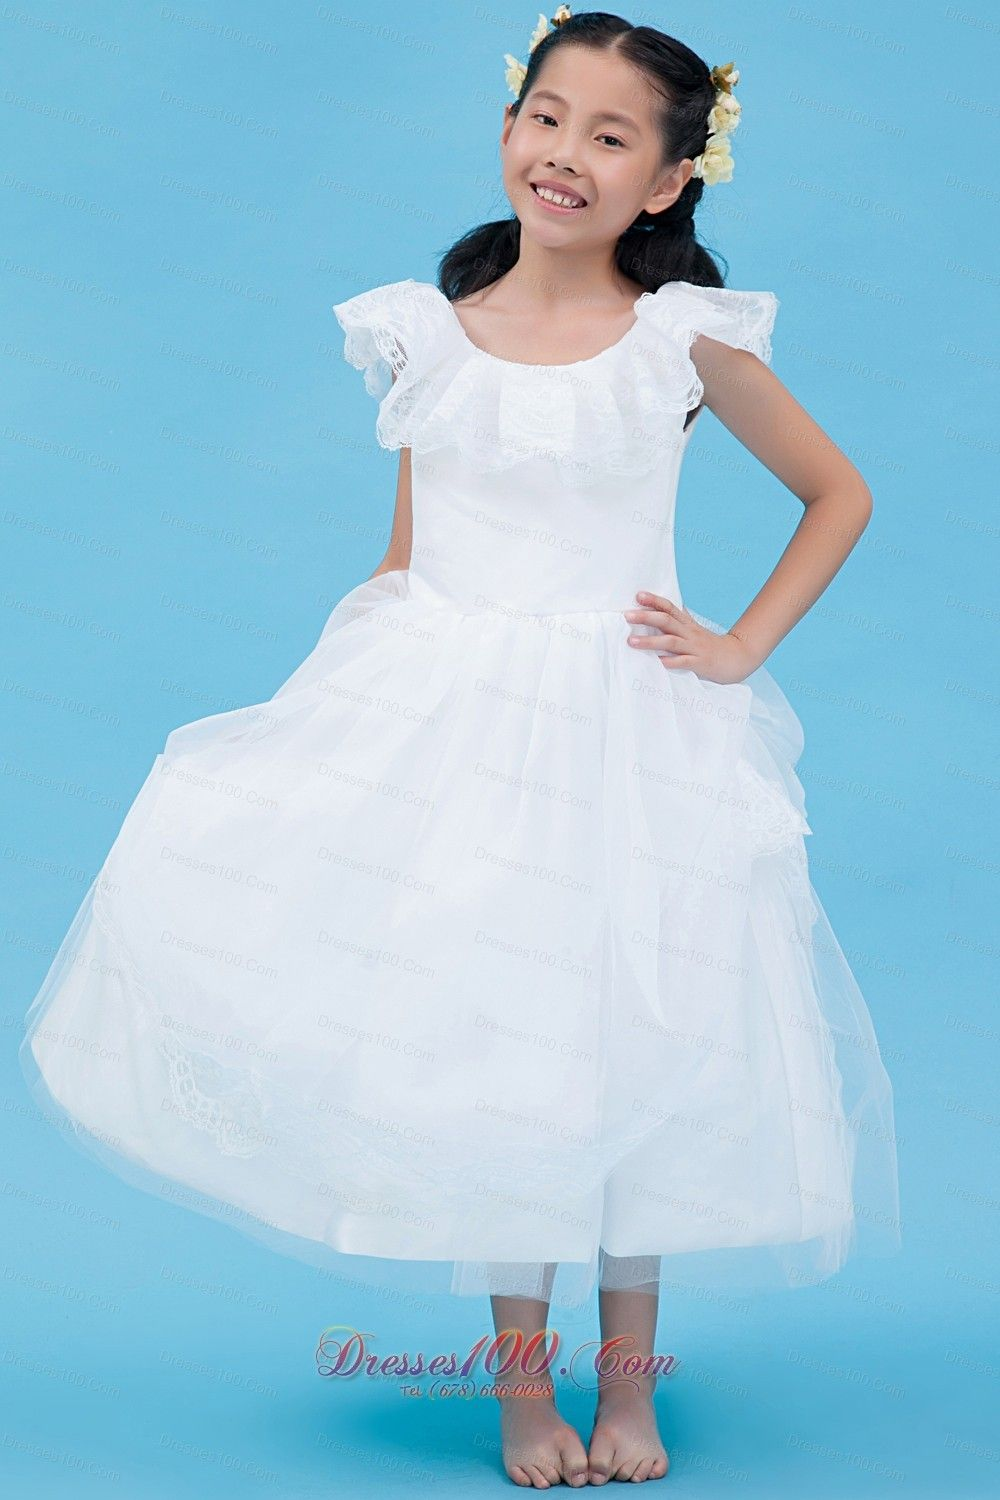 08553b6fcbf New White A-line Scoop Flower Girl Dress Ankle-length Tulle Lace ...